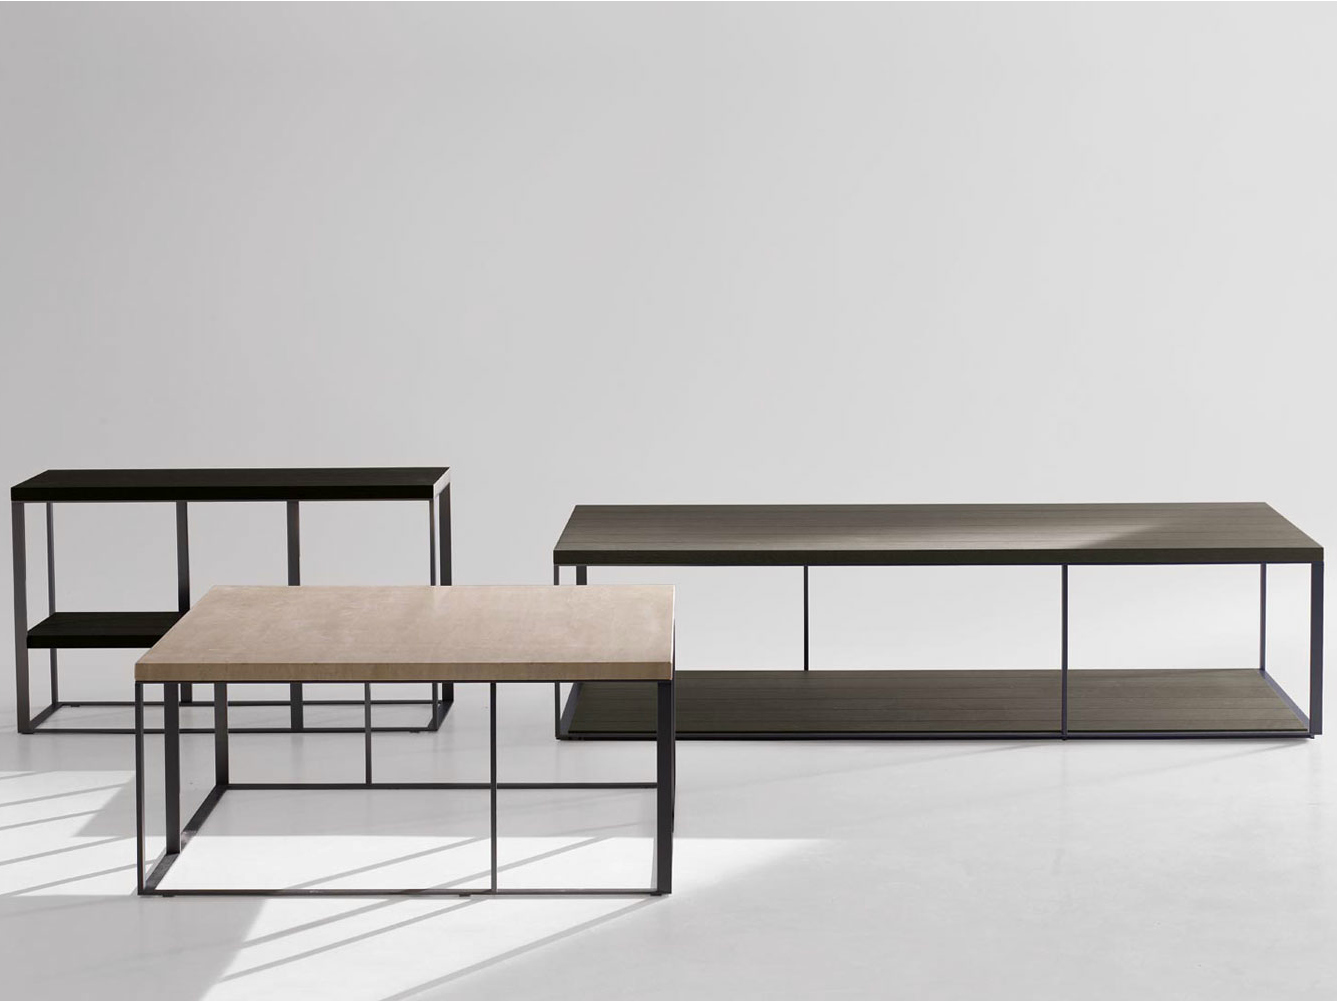 Lithos rechteckiger couchtisch by maxalto a brand of b b for B b italia spa